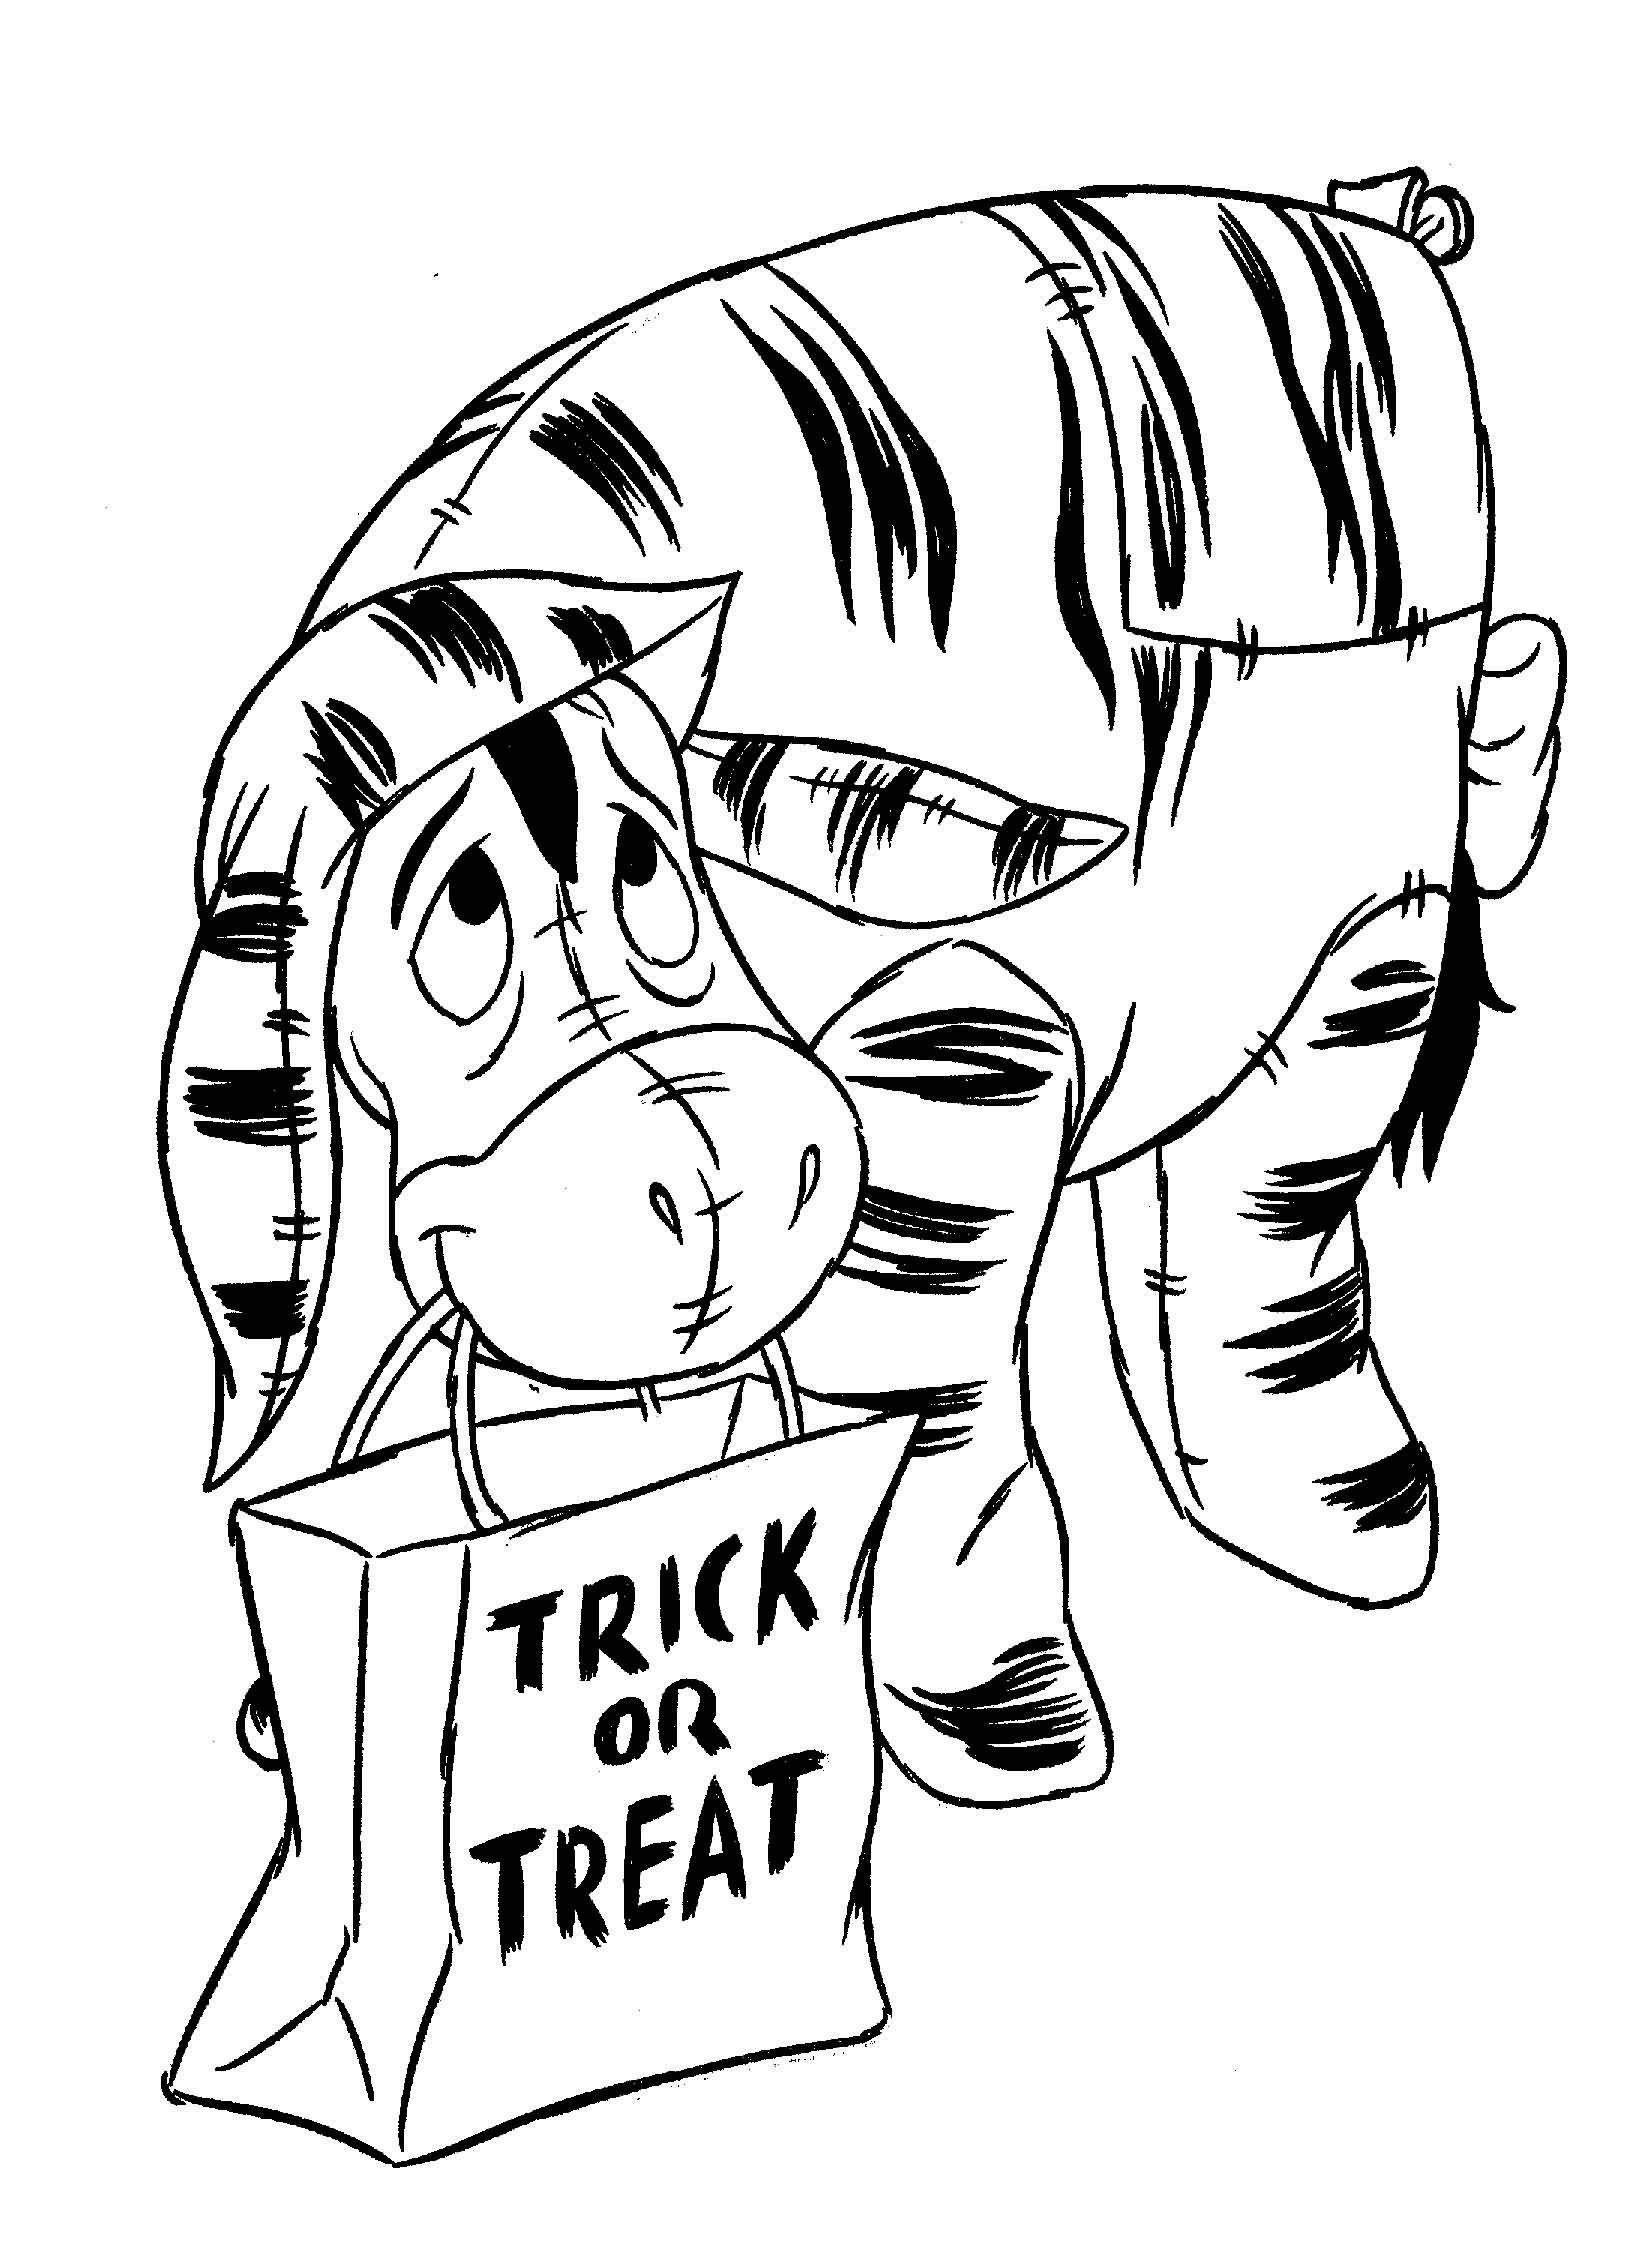 halloween pooh bear coloring pages - photo#21